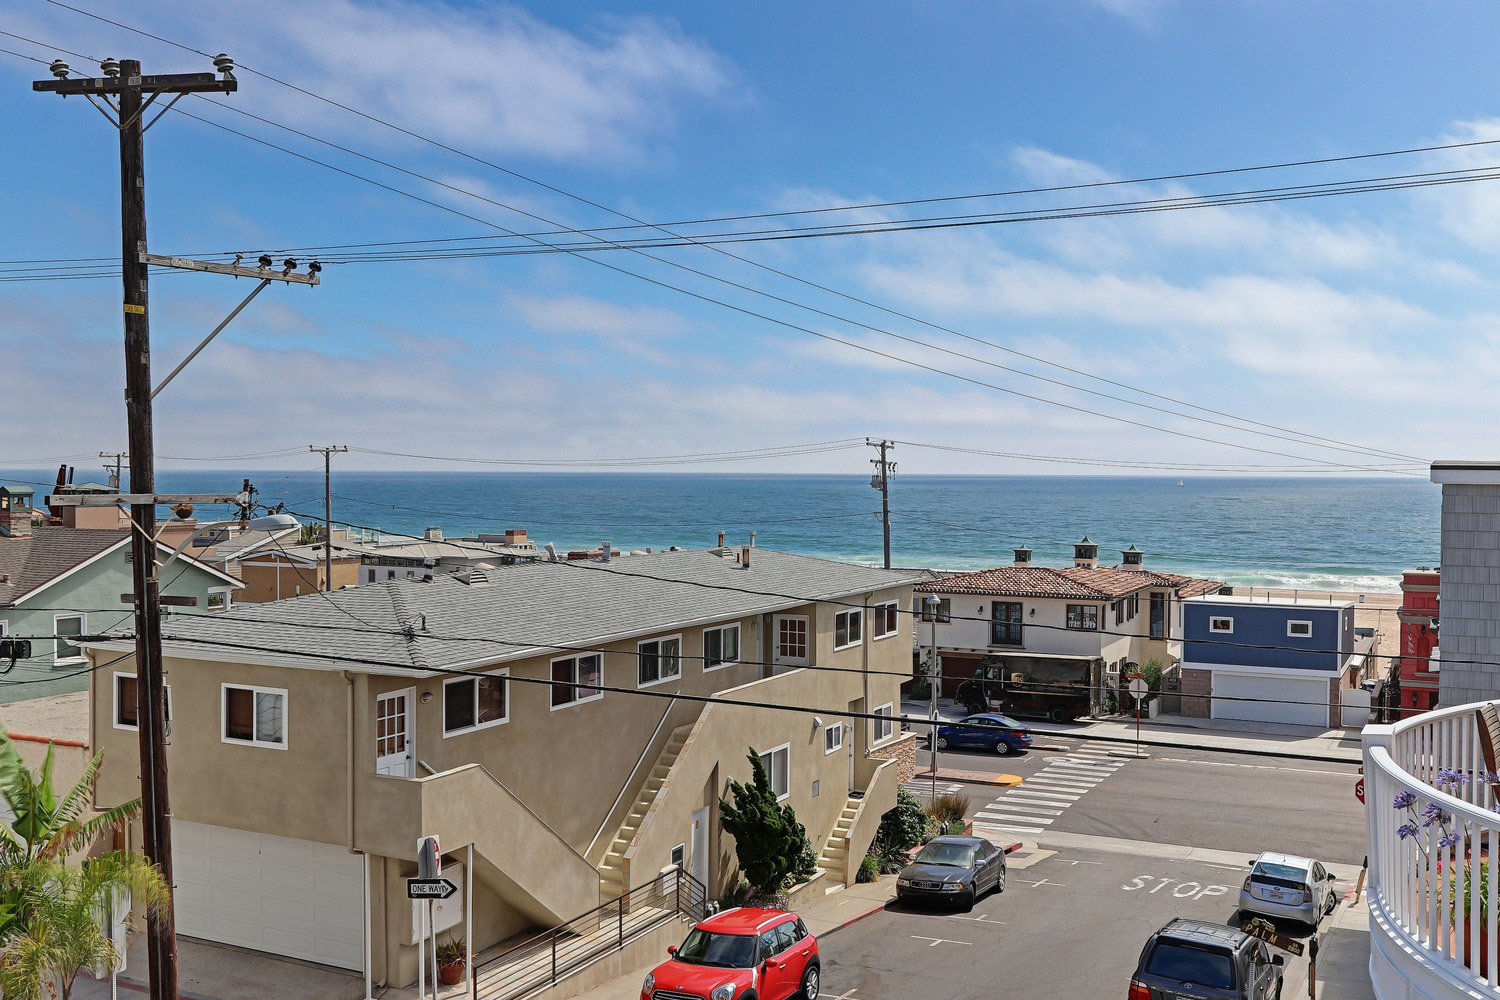 Additional photo for property listing at Modern in Hermosa 123 28th St, Hermosa Beach, CA 90254 Hermosa Beach, California,90254 Stati Uniti